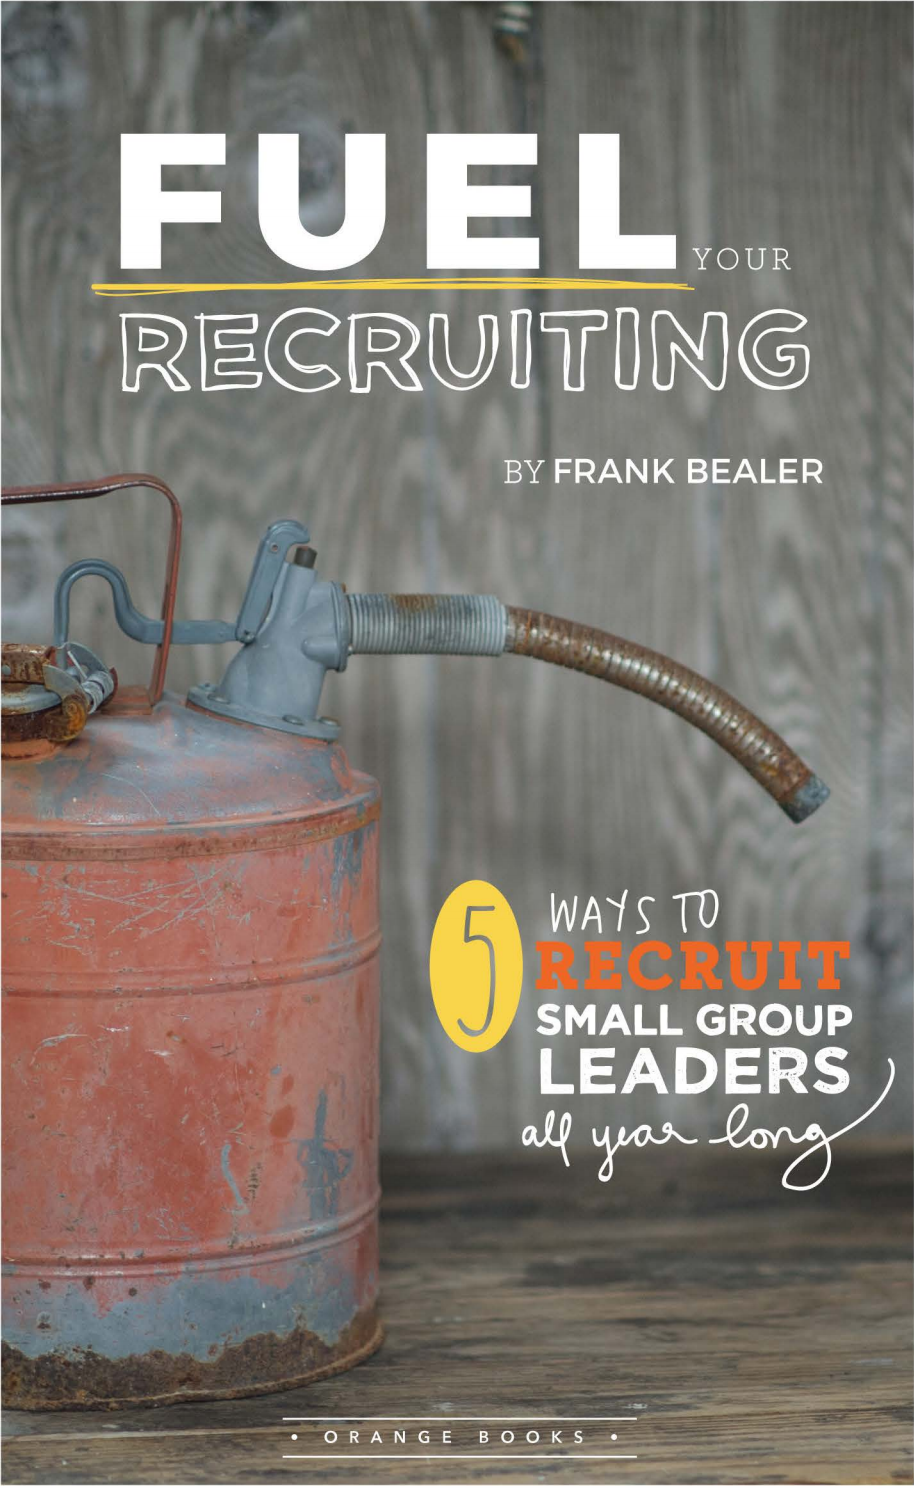 Click image to get your free eBook!